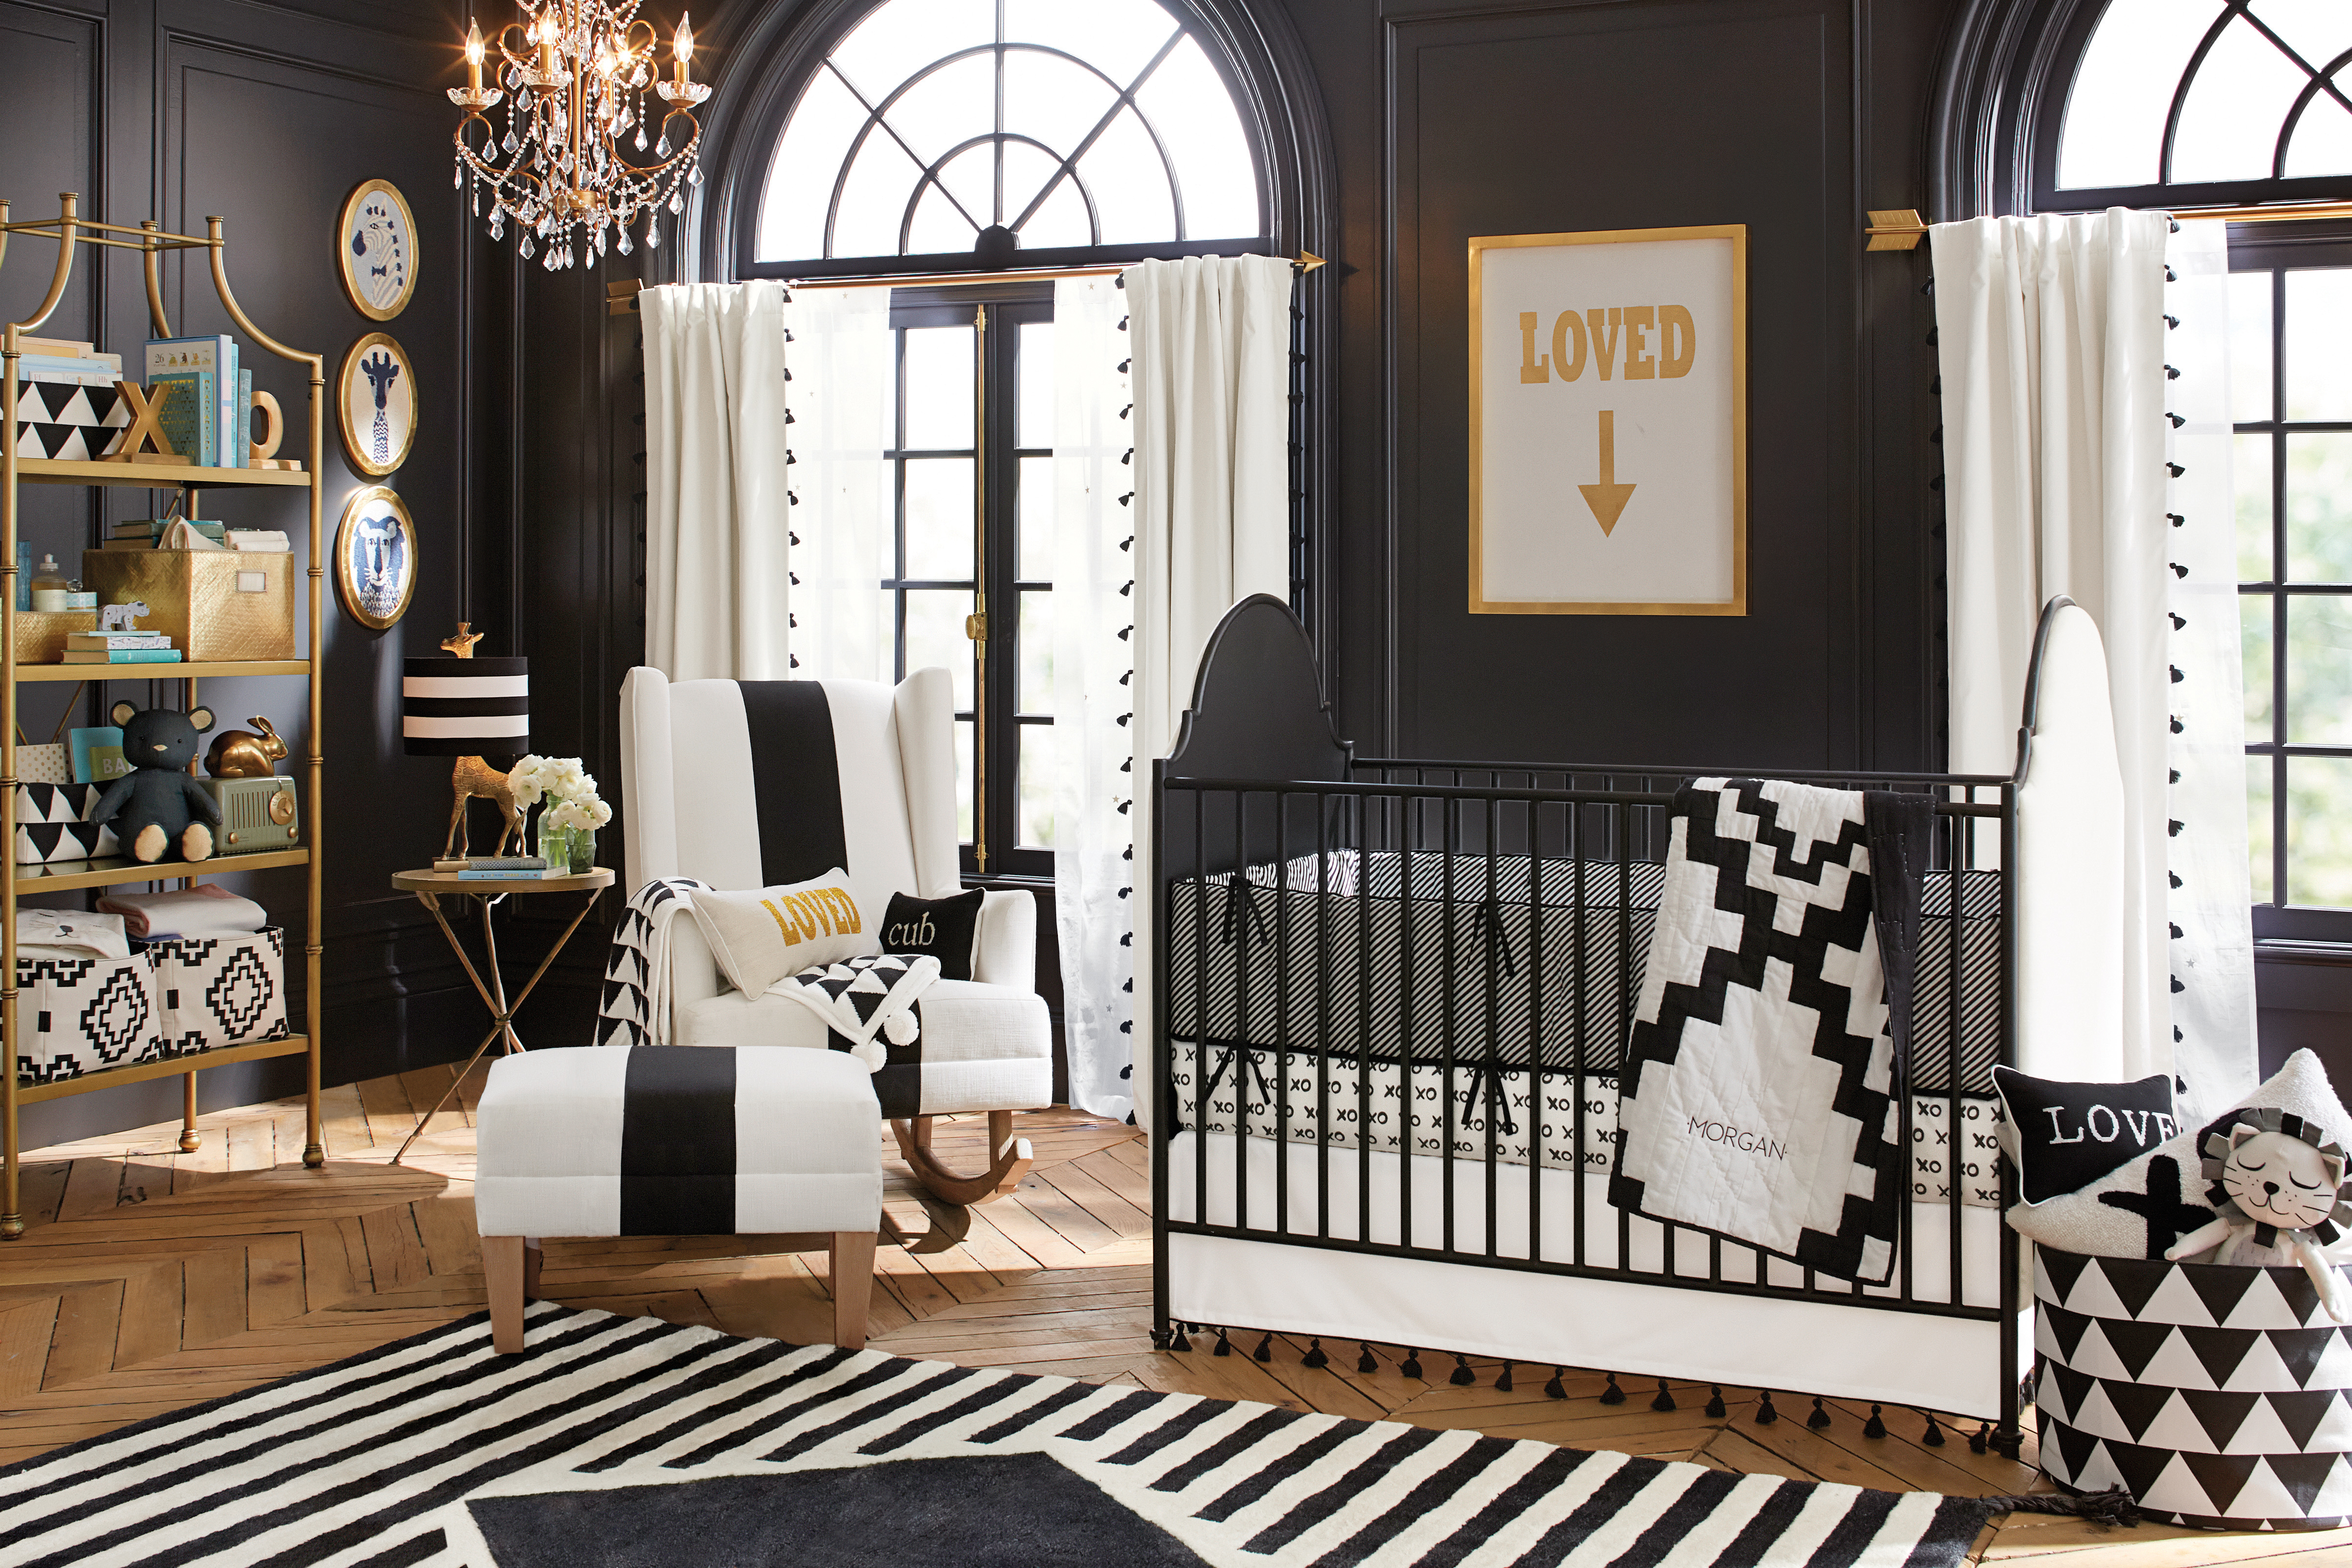 Living Room Pottery Barn Designs pottery barn kids debuts first nursery collection with design duo emily current and meritt elliott business wire